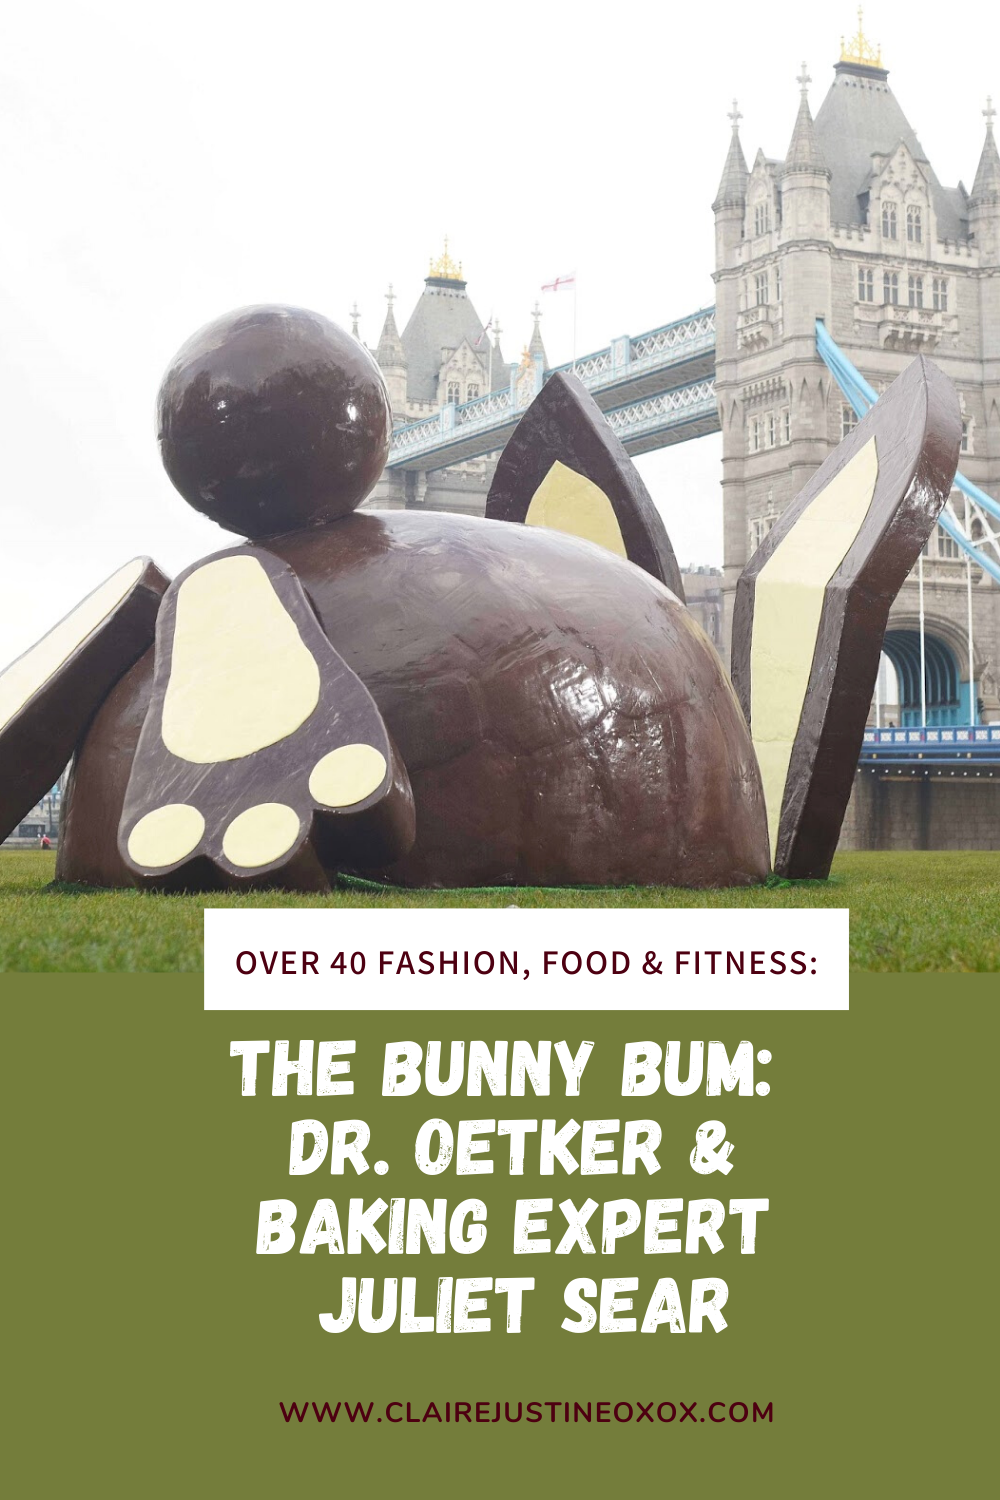 The Bunny Bum:  Dr. Oetker & Baking Expert Juliet Sear